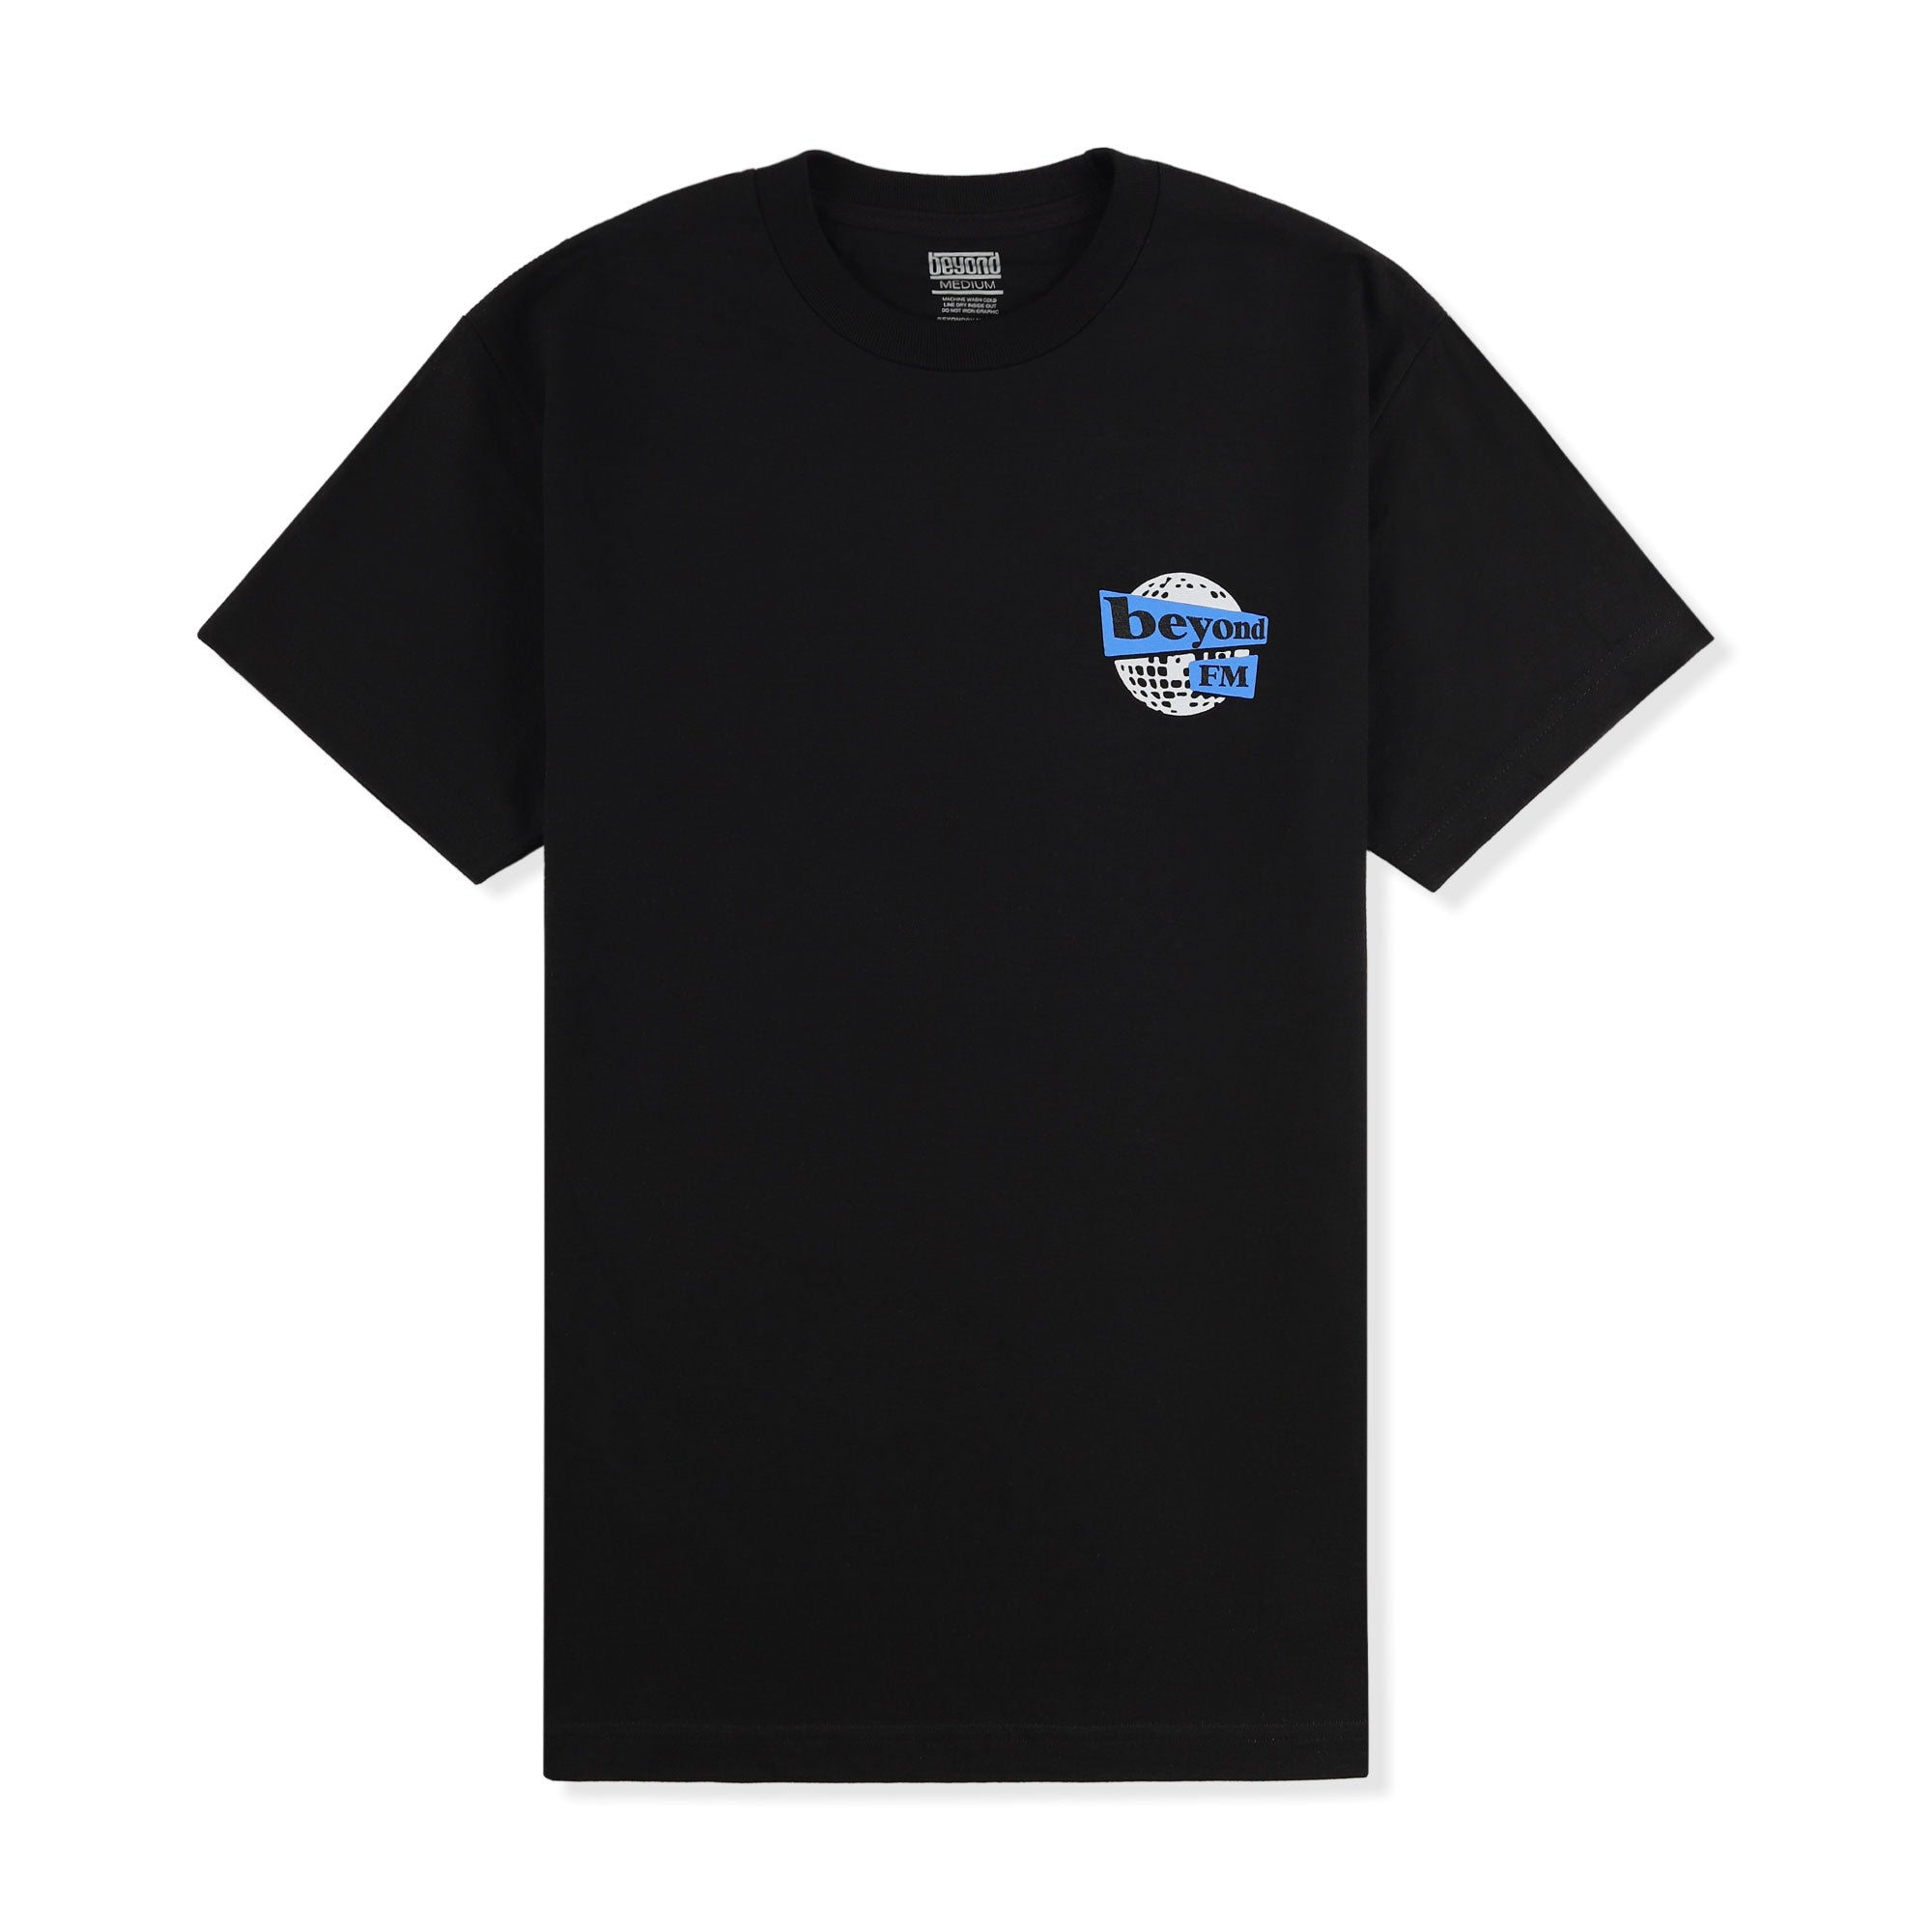 Beyond FM Tee Product Photo #1